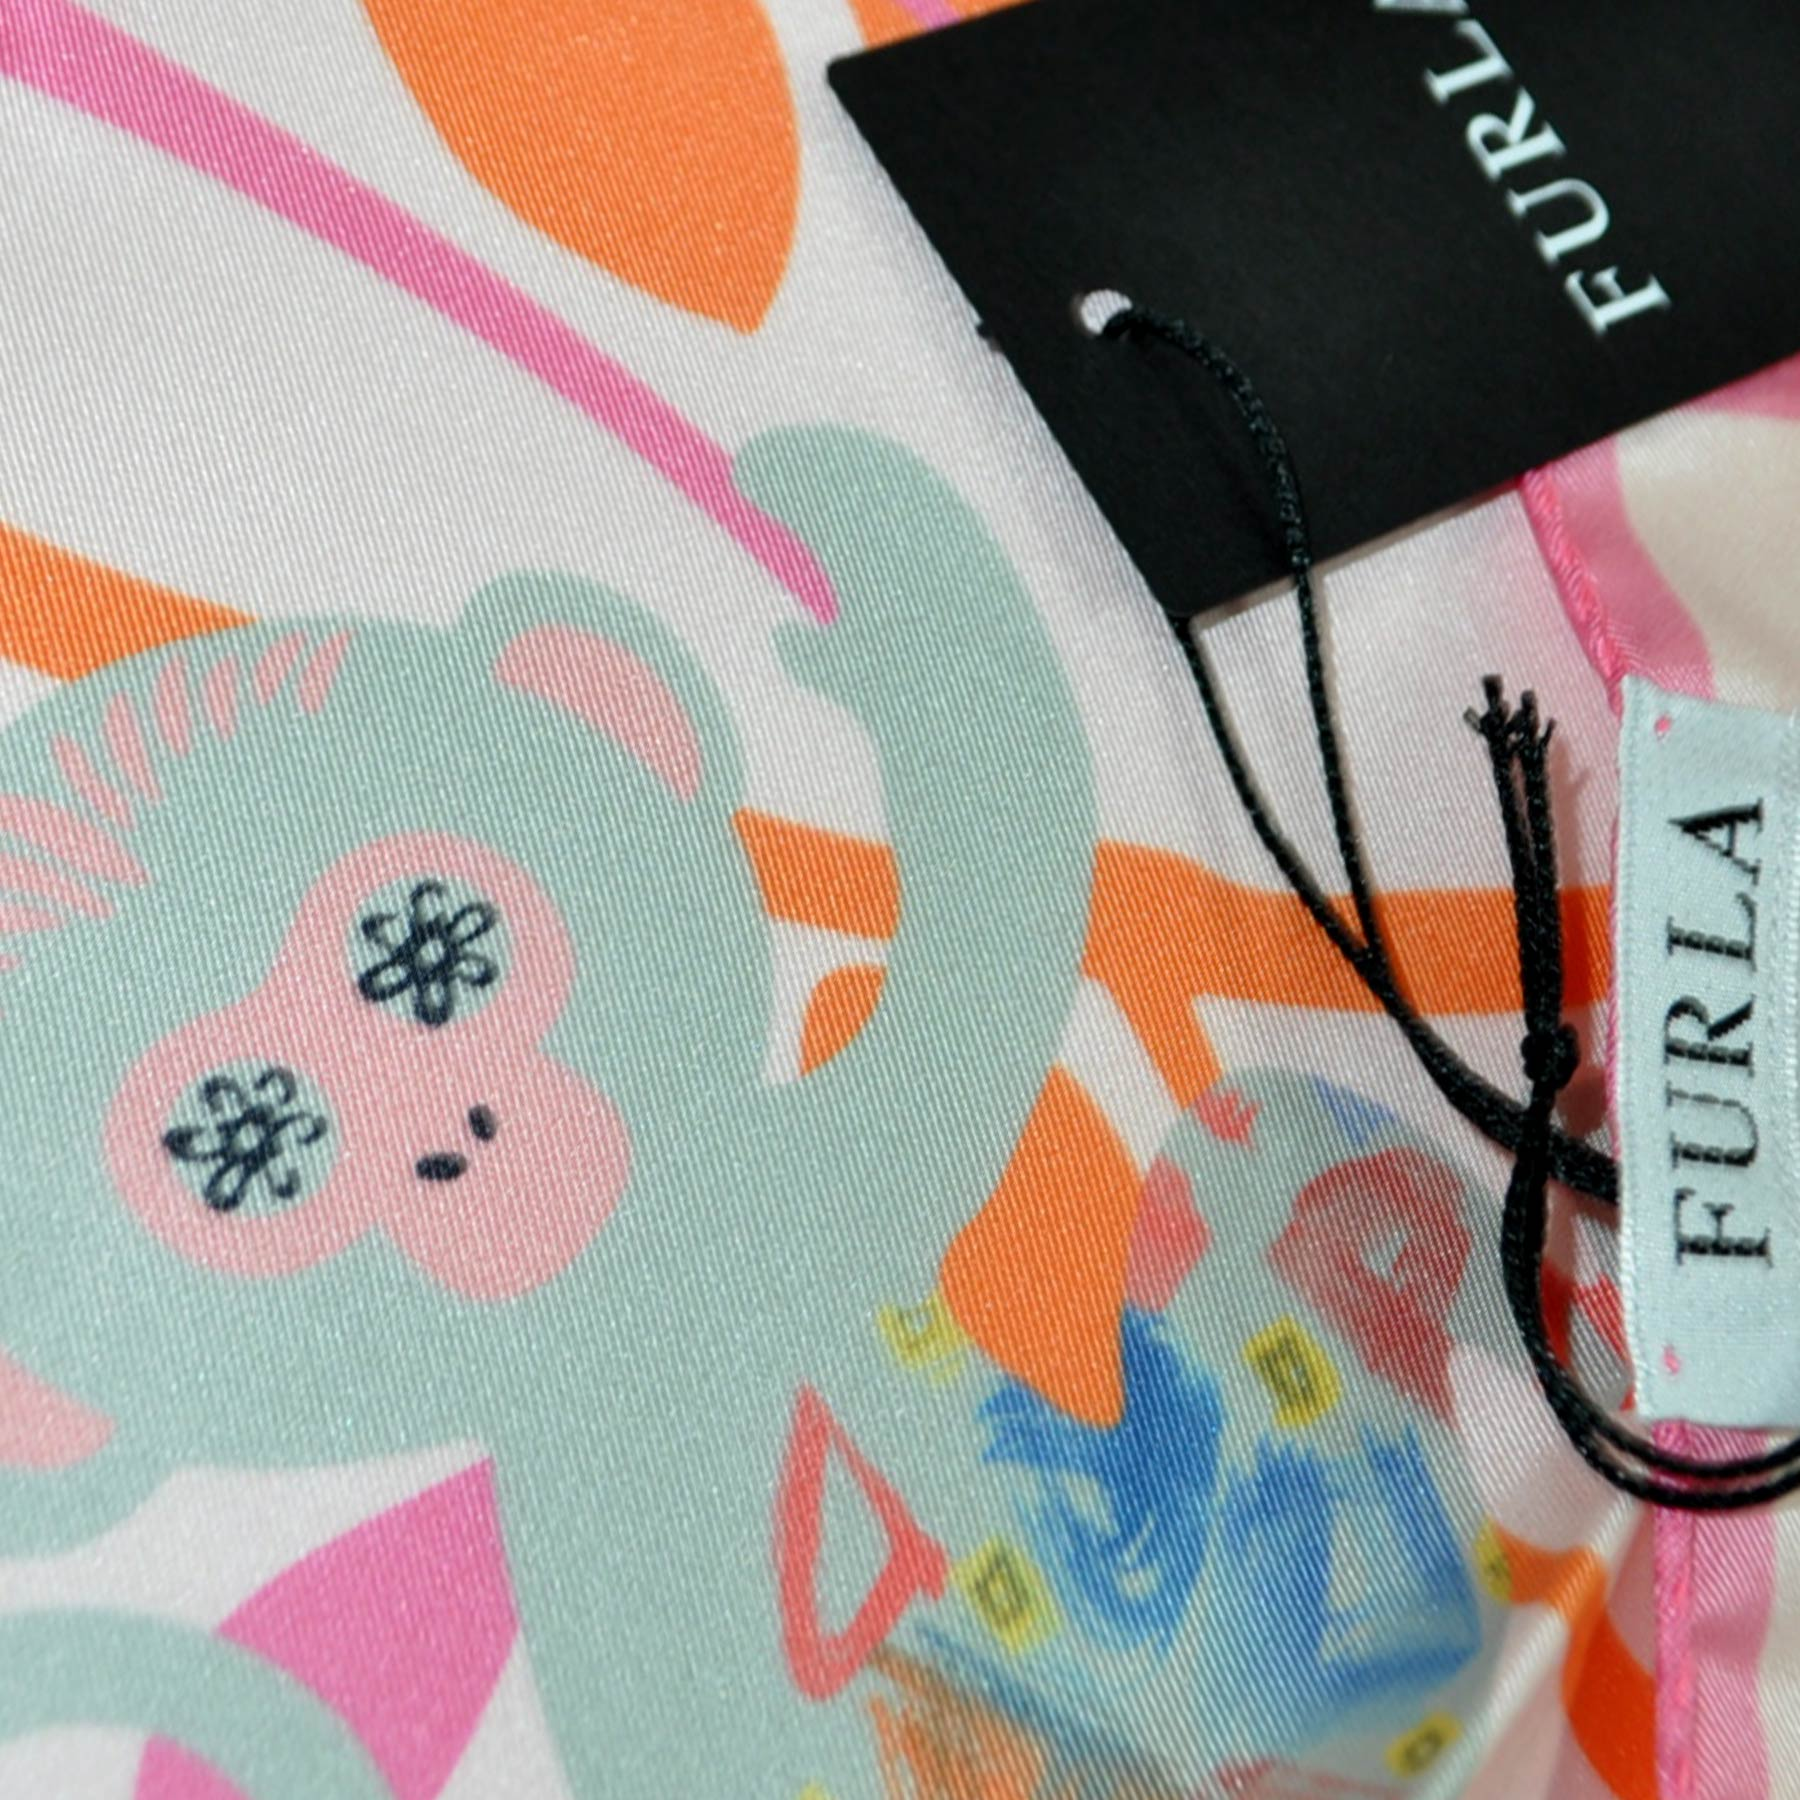 Furla Scarf Pink Monkeys & Purses Small Silk Square Scarf